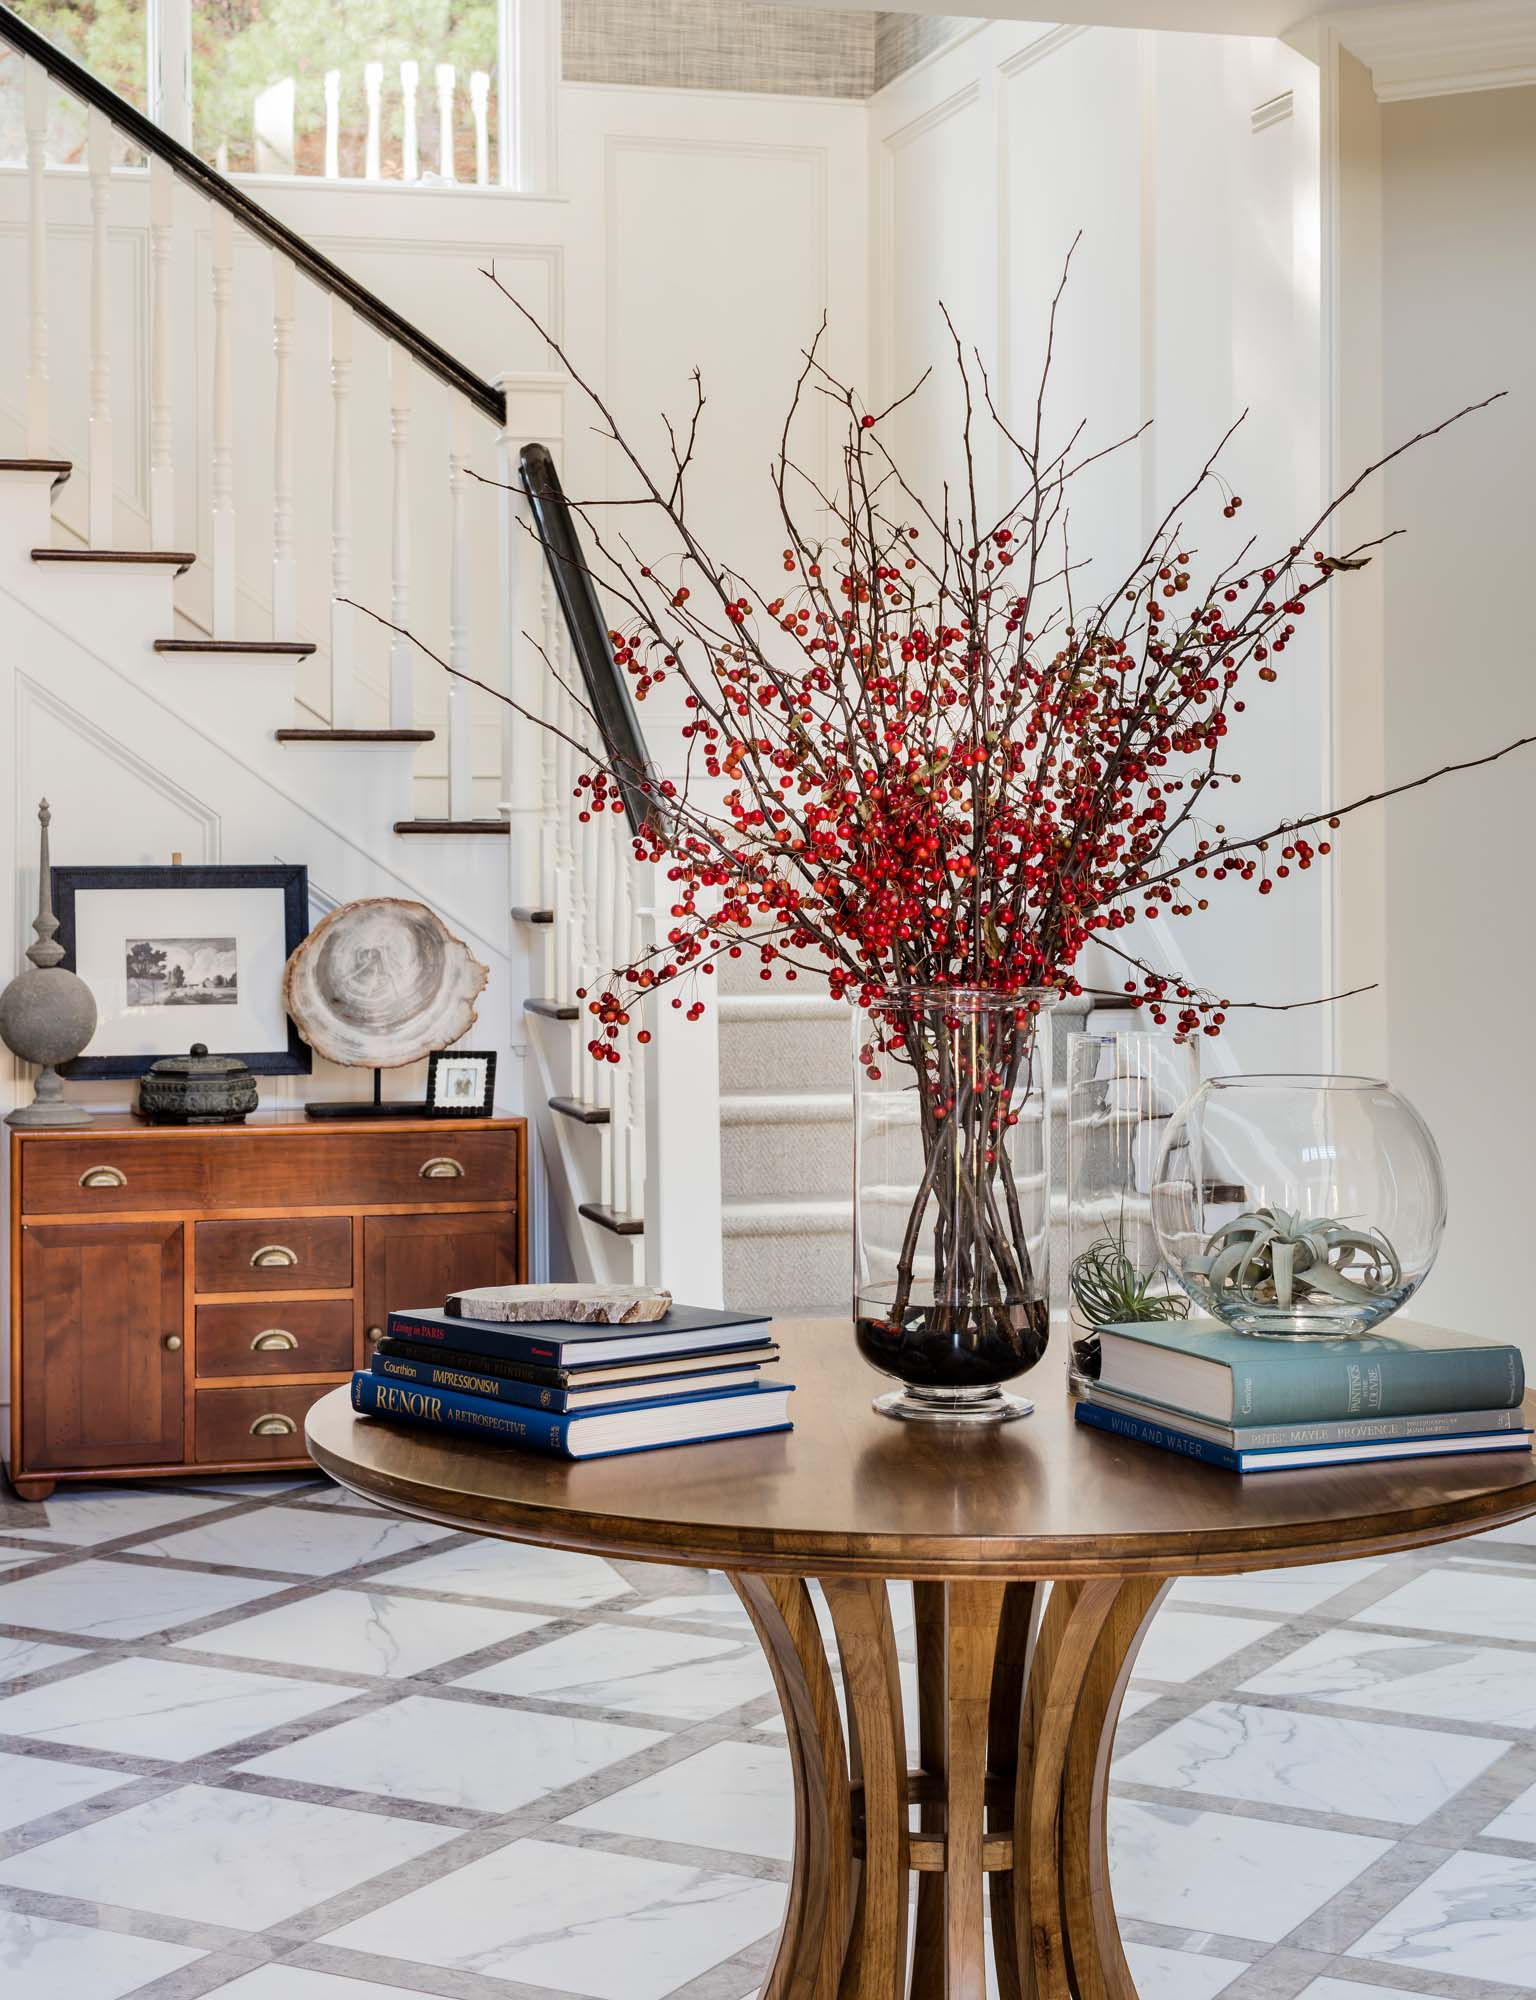 5 1FOYER table with red berries.jpg